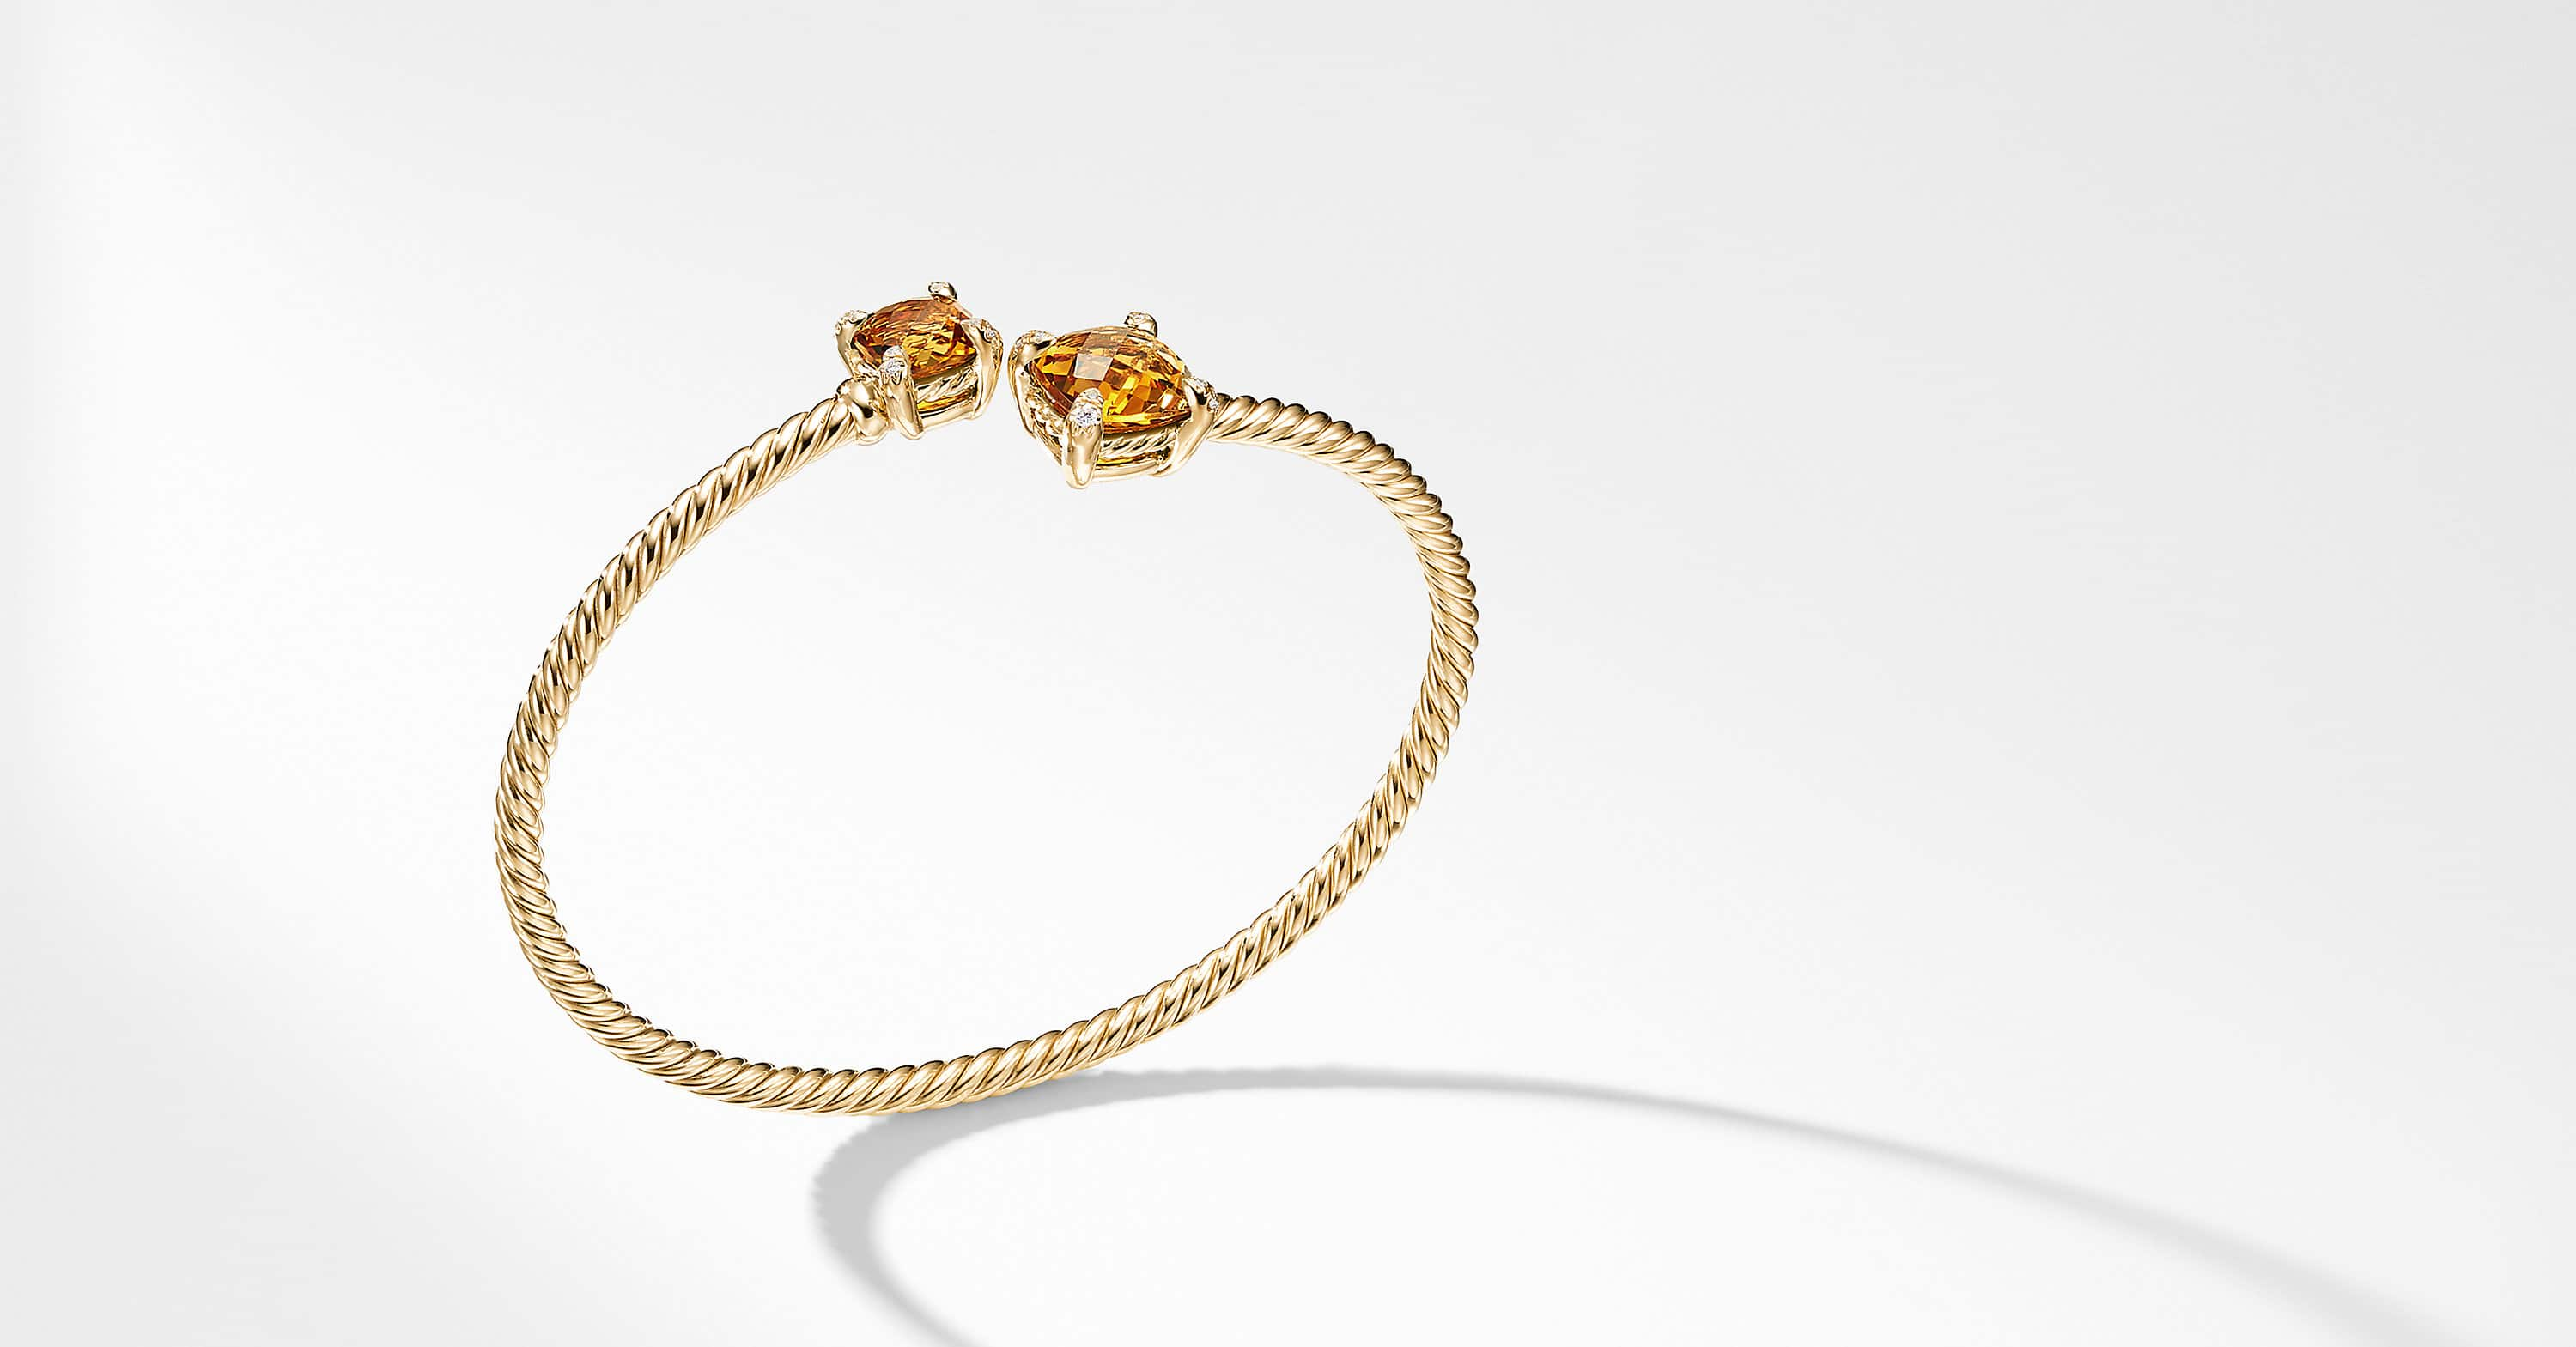 Chatelaine Bypass Bracelet with Diamonds in 18K Gold